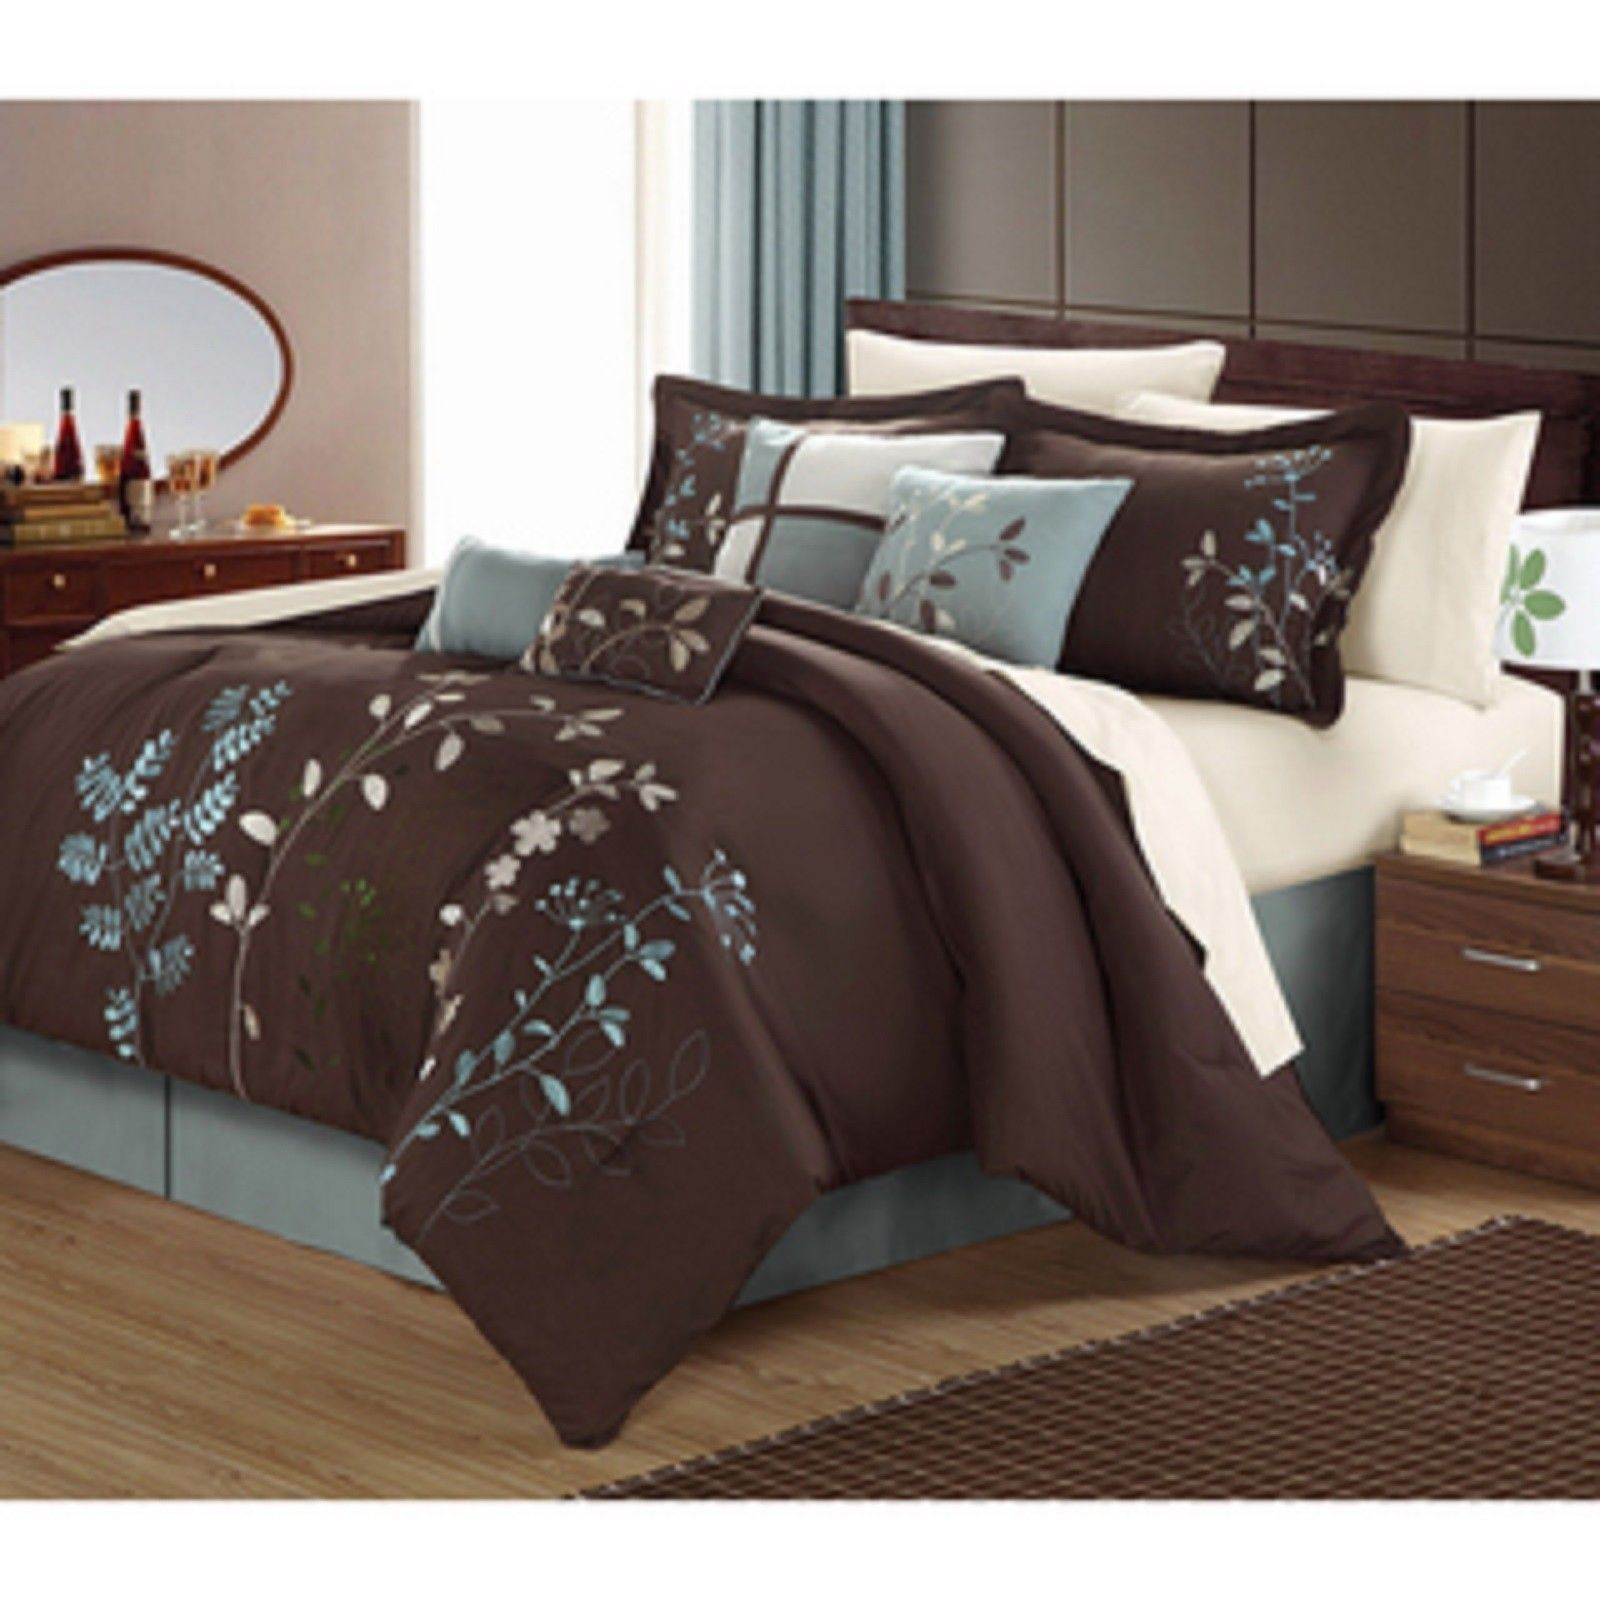 Luxury Bedding Sets Modern forter Set Queen King Teal Blue Brown